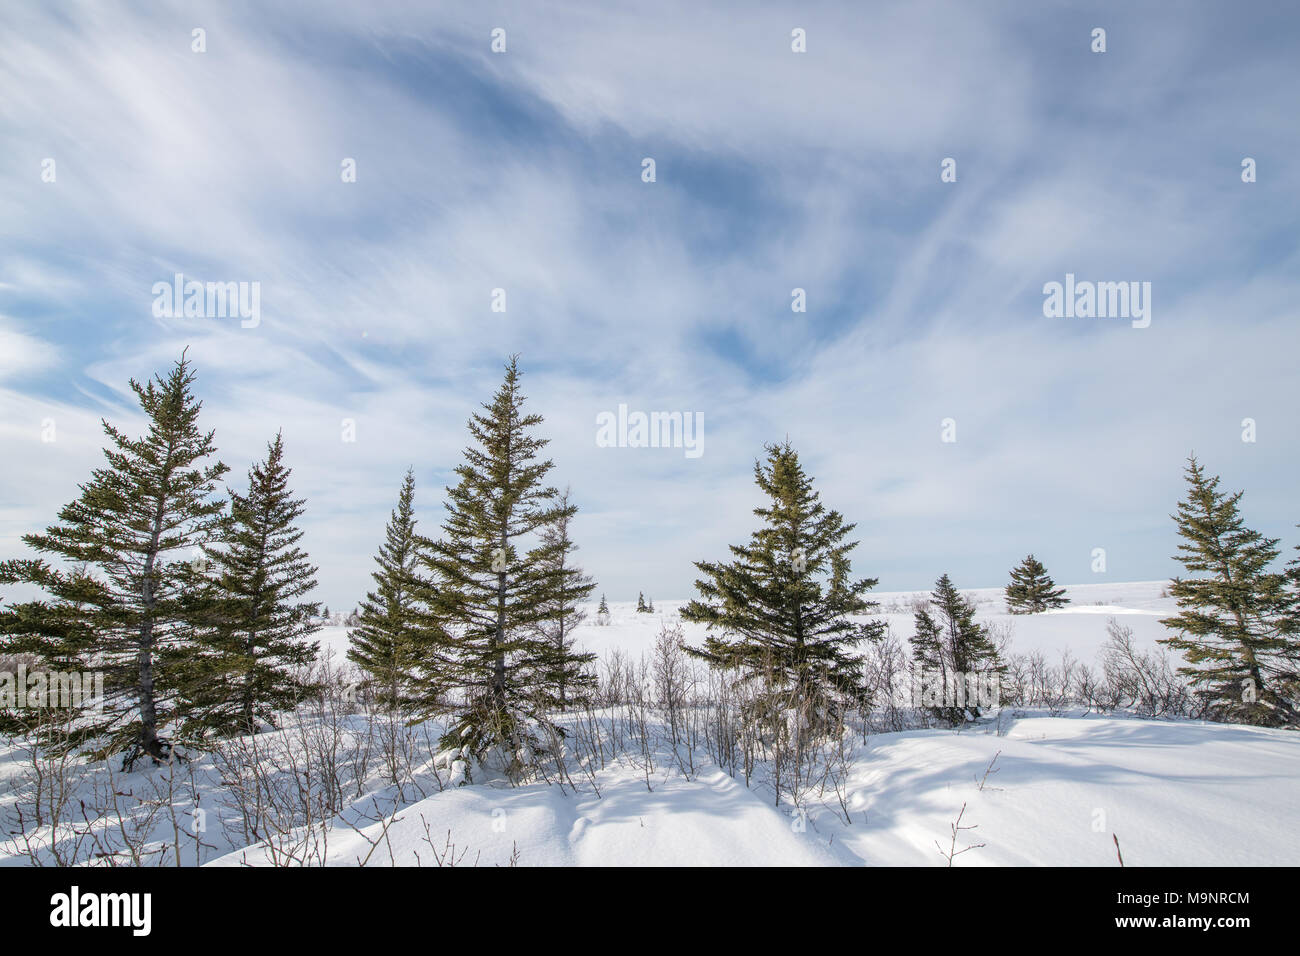 TAIGA - occurring between the boreal forest and the arctic tundra -- sometimes referred to as the 'land of little sticks' area Manitoba, Canada - Stock Image